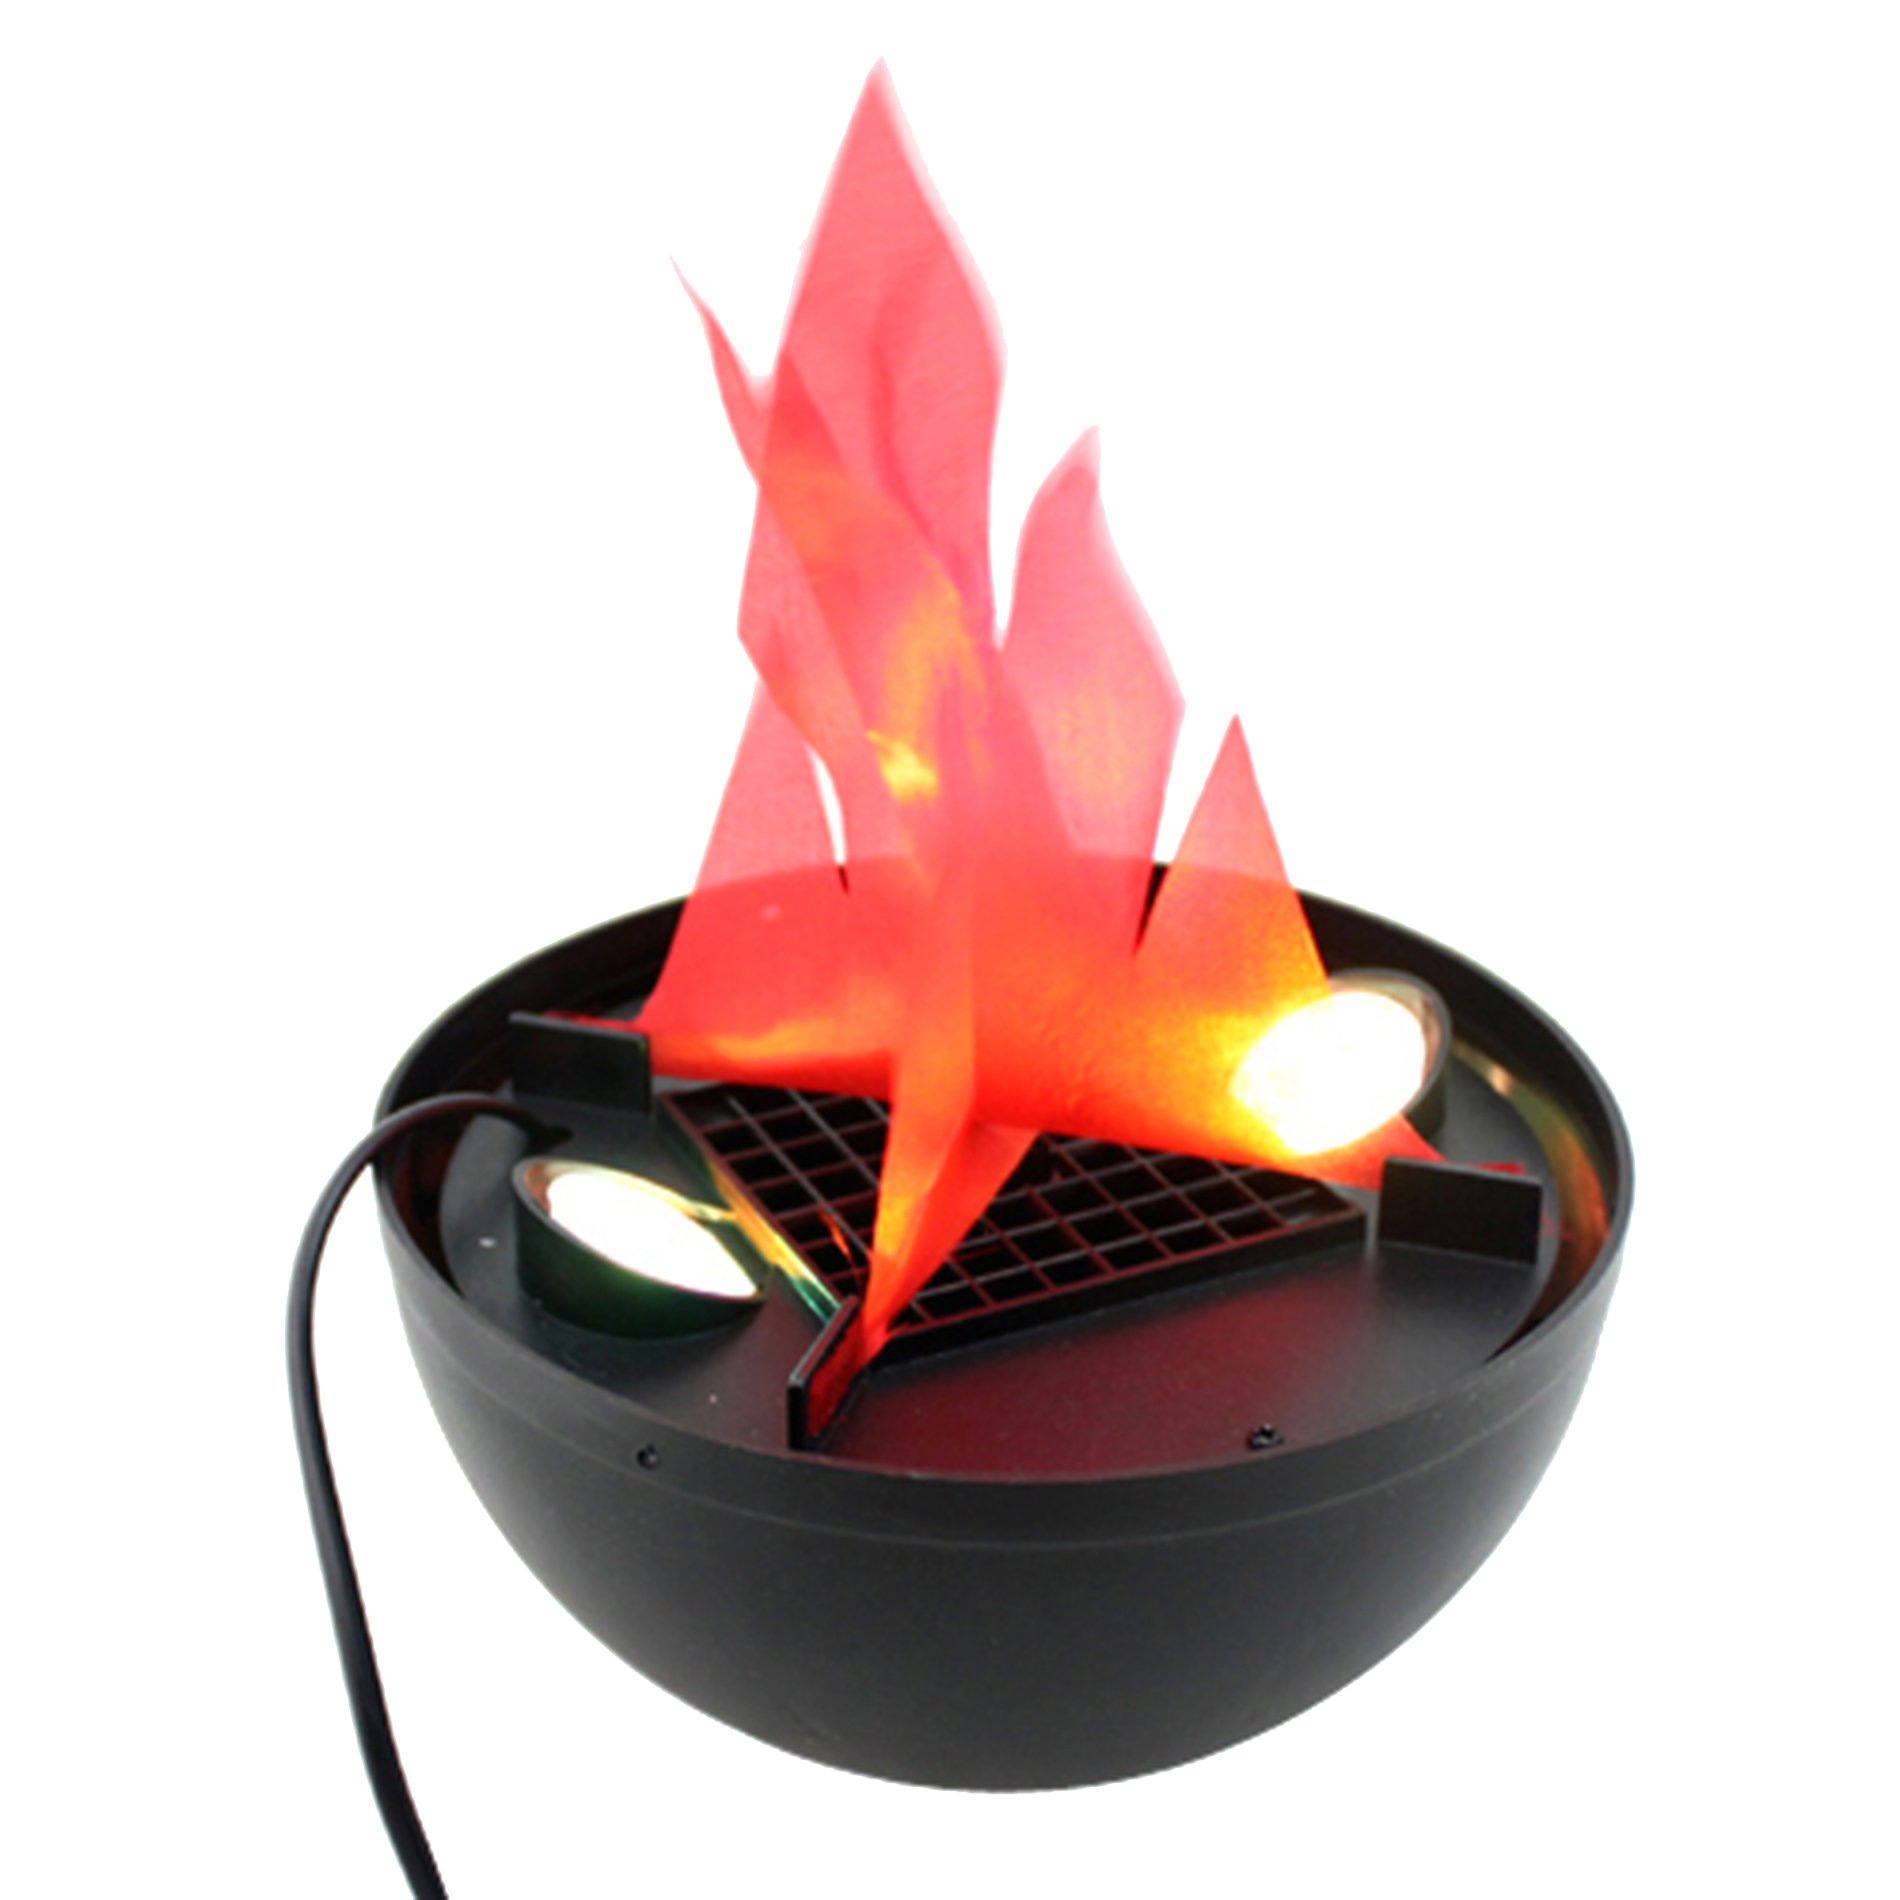 AVOLUTION Hanging Fake Flame Lamp Fire Pit Bowl Halloween Prop Decorations